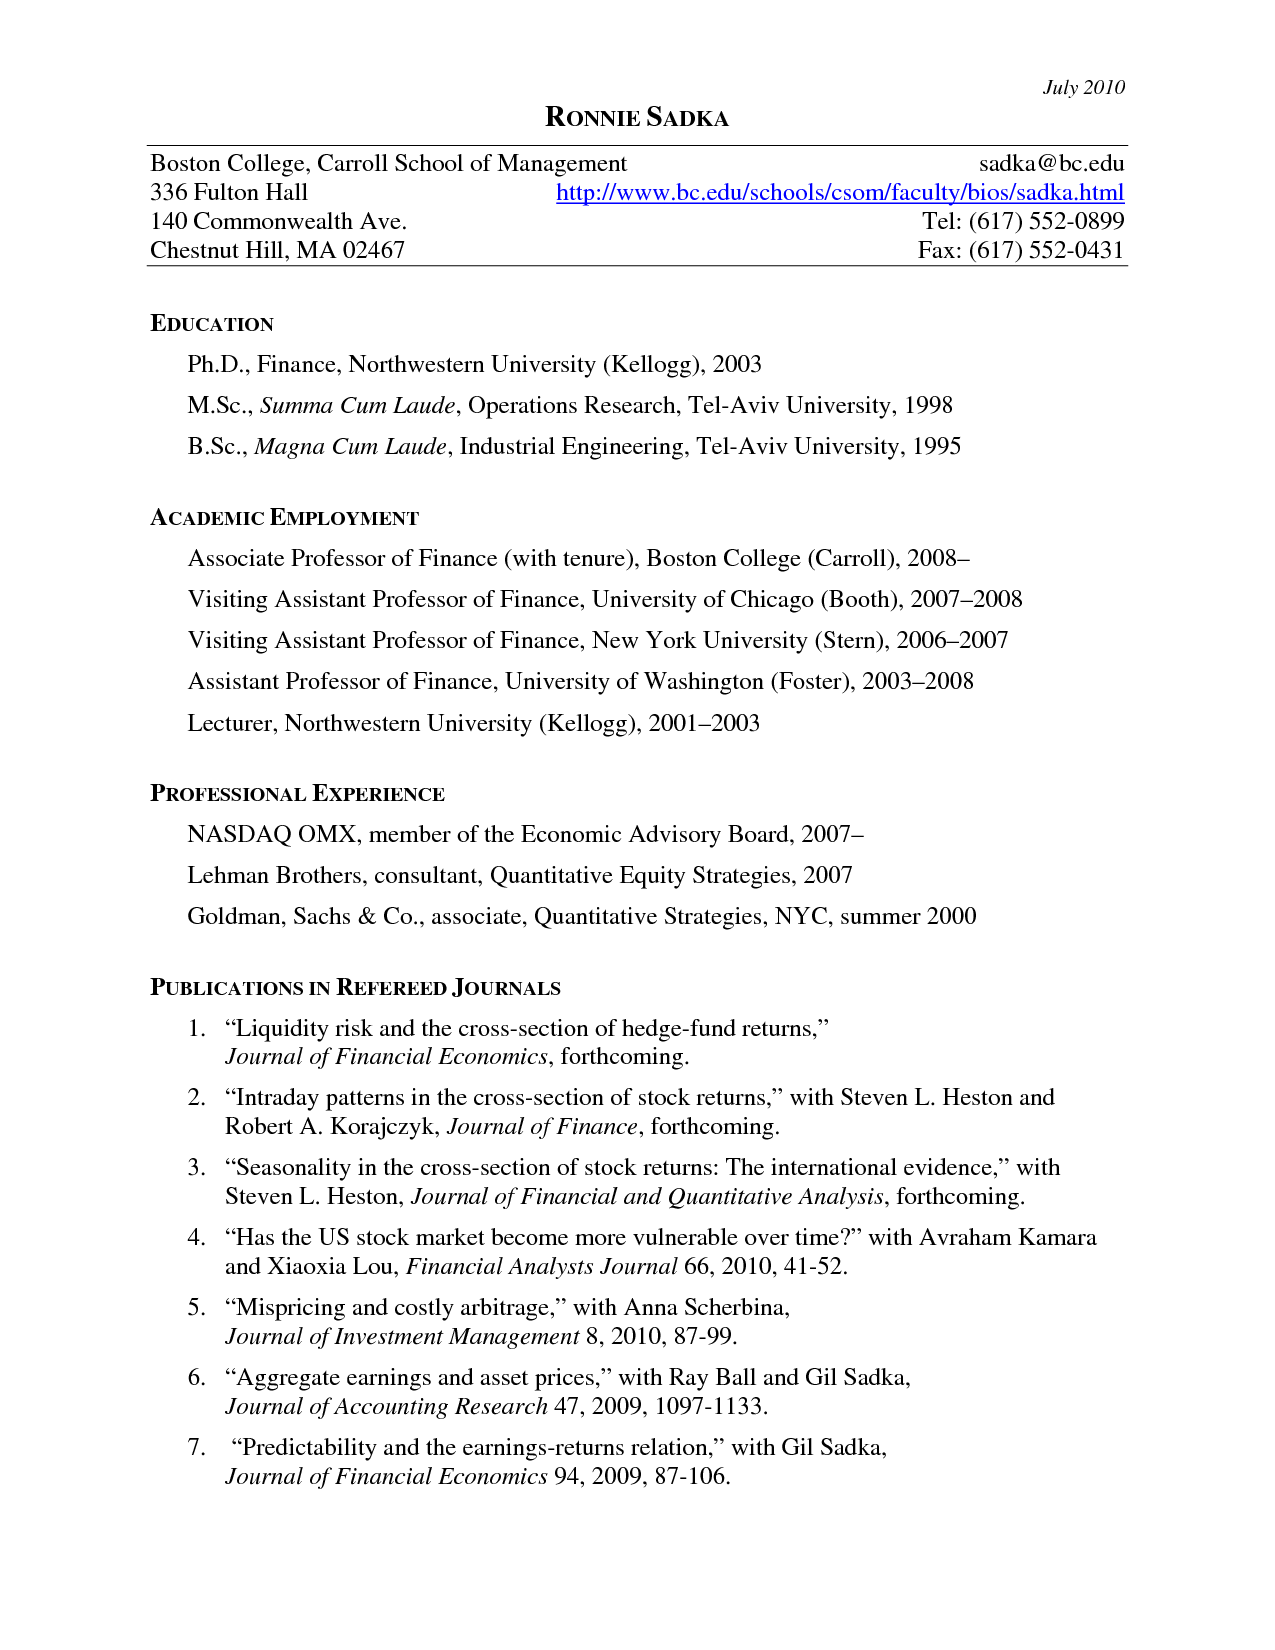 Cv Templates Harvard (1 di 2020 Proposal